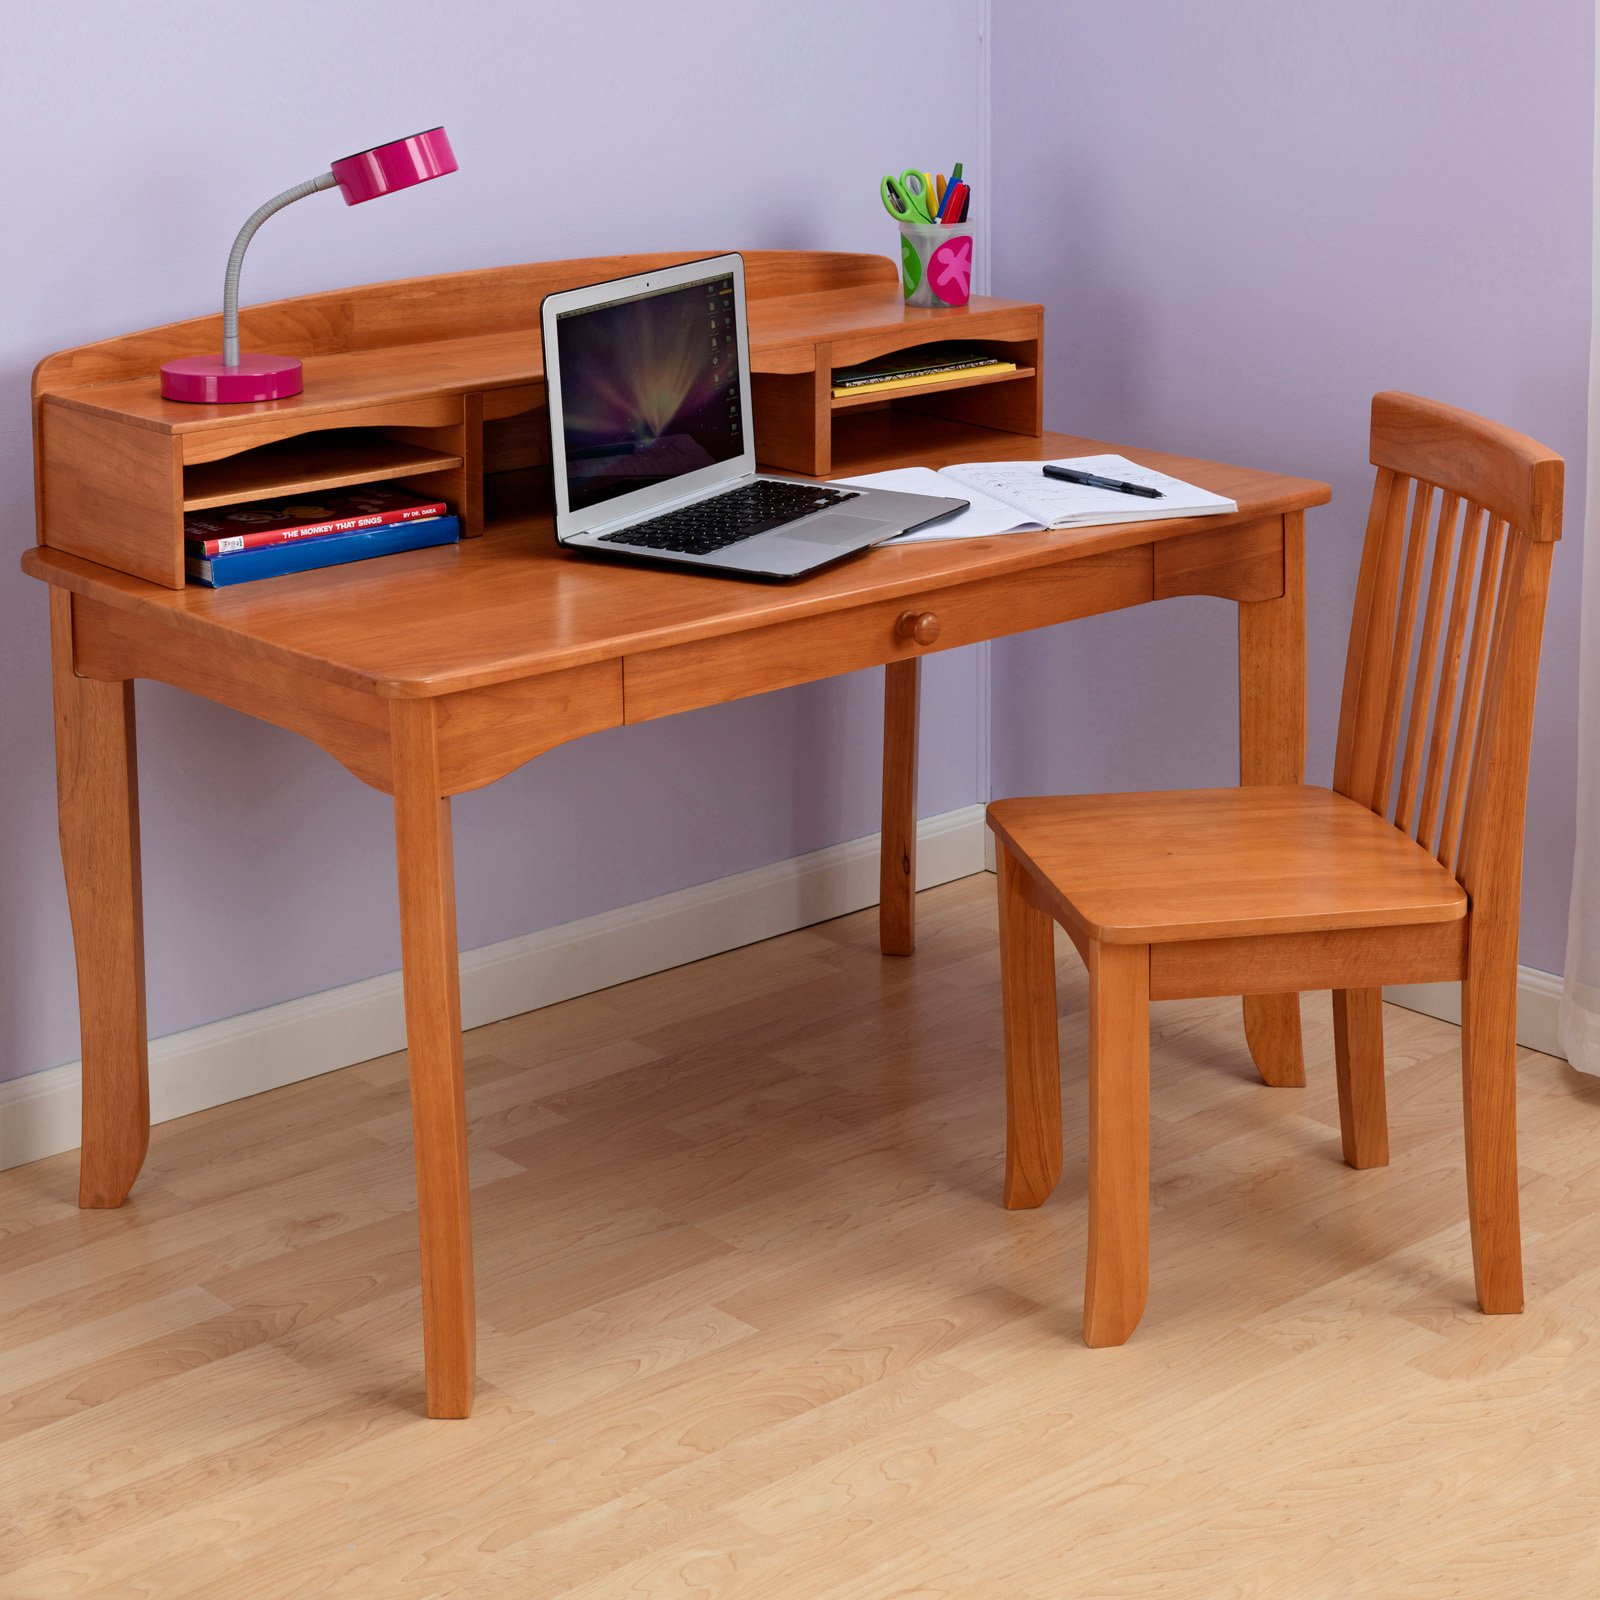 Kid Desk With Chair Design – HomesFeed